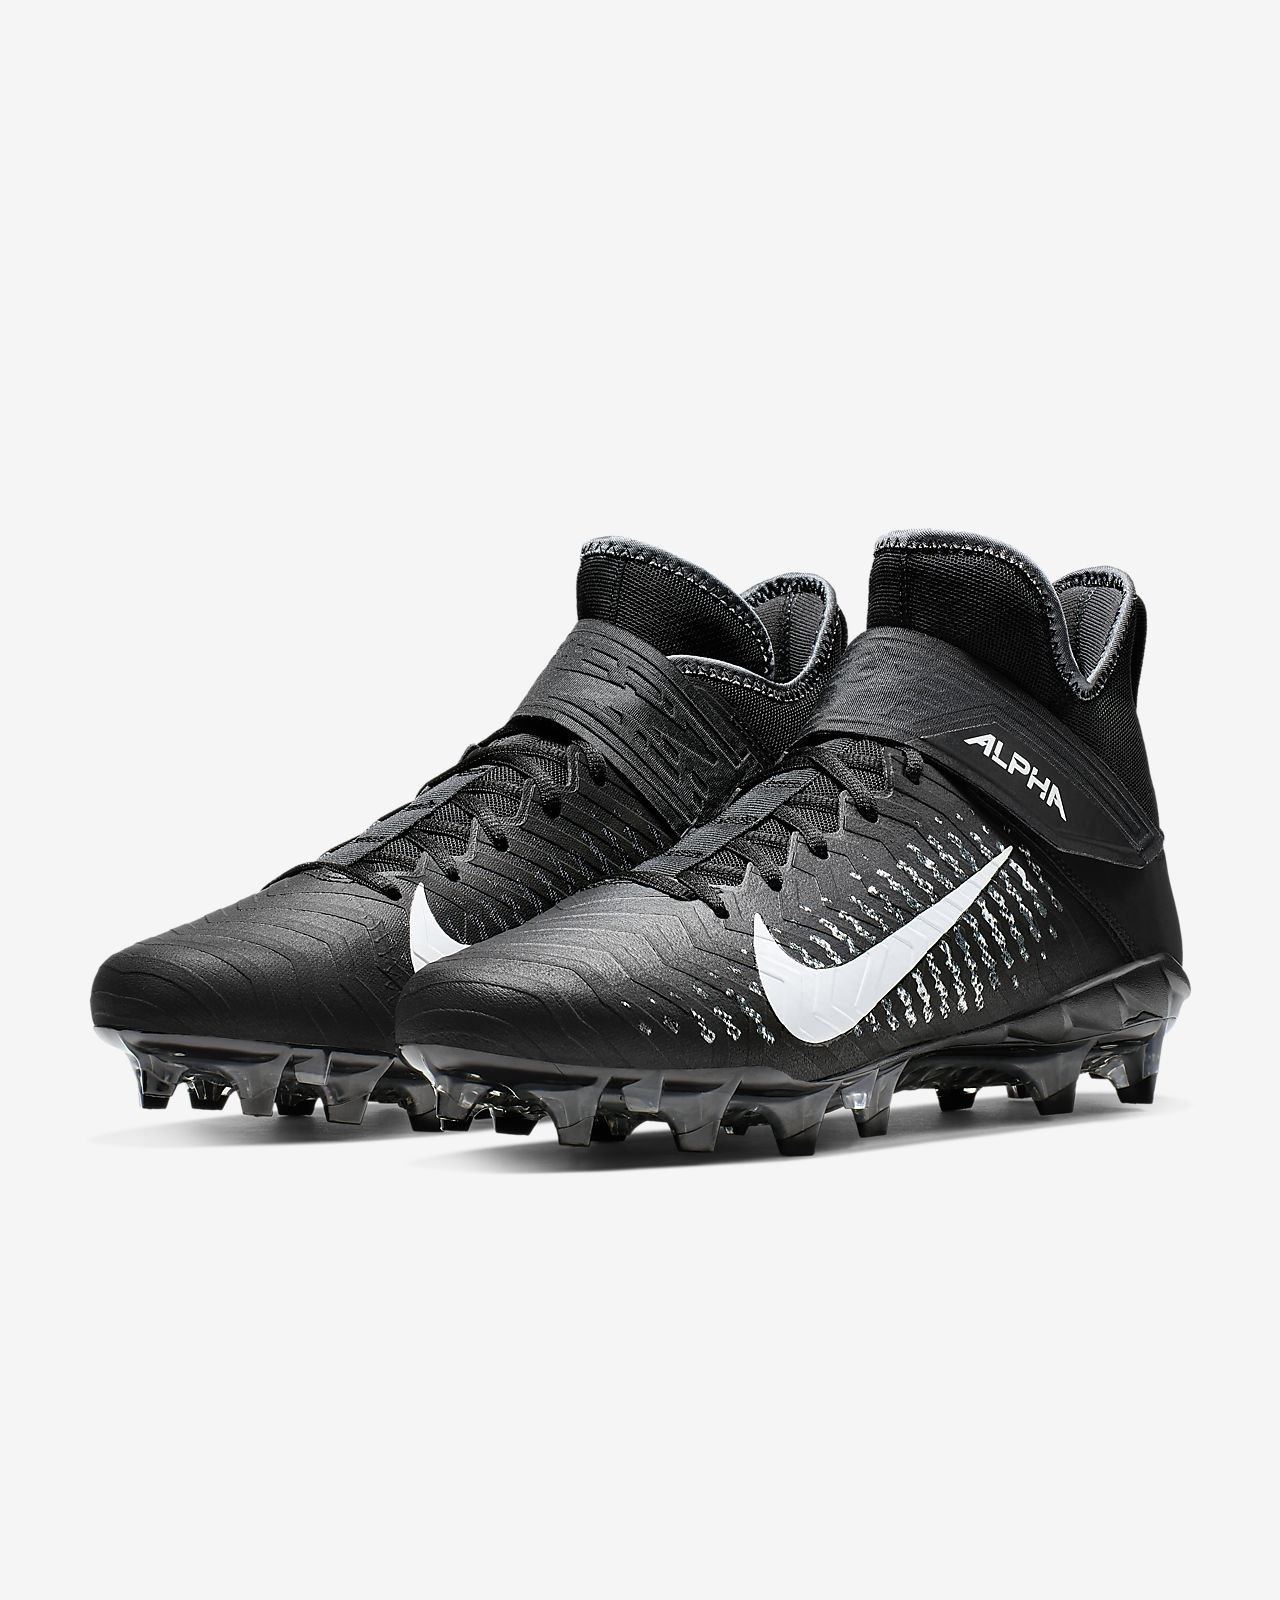 huge selection of 0ac8a 9881b ... Nike Alpha Menace Pro 2 Mid Men s Football Cleat